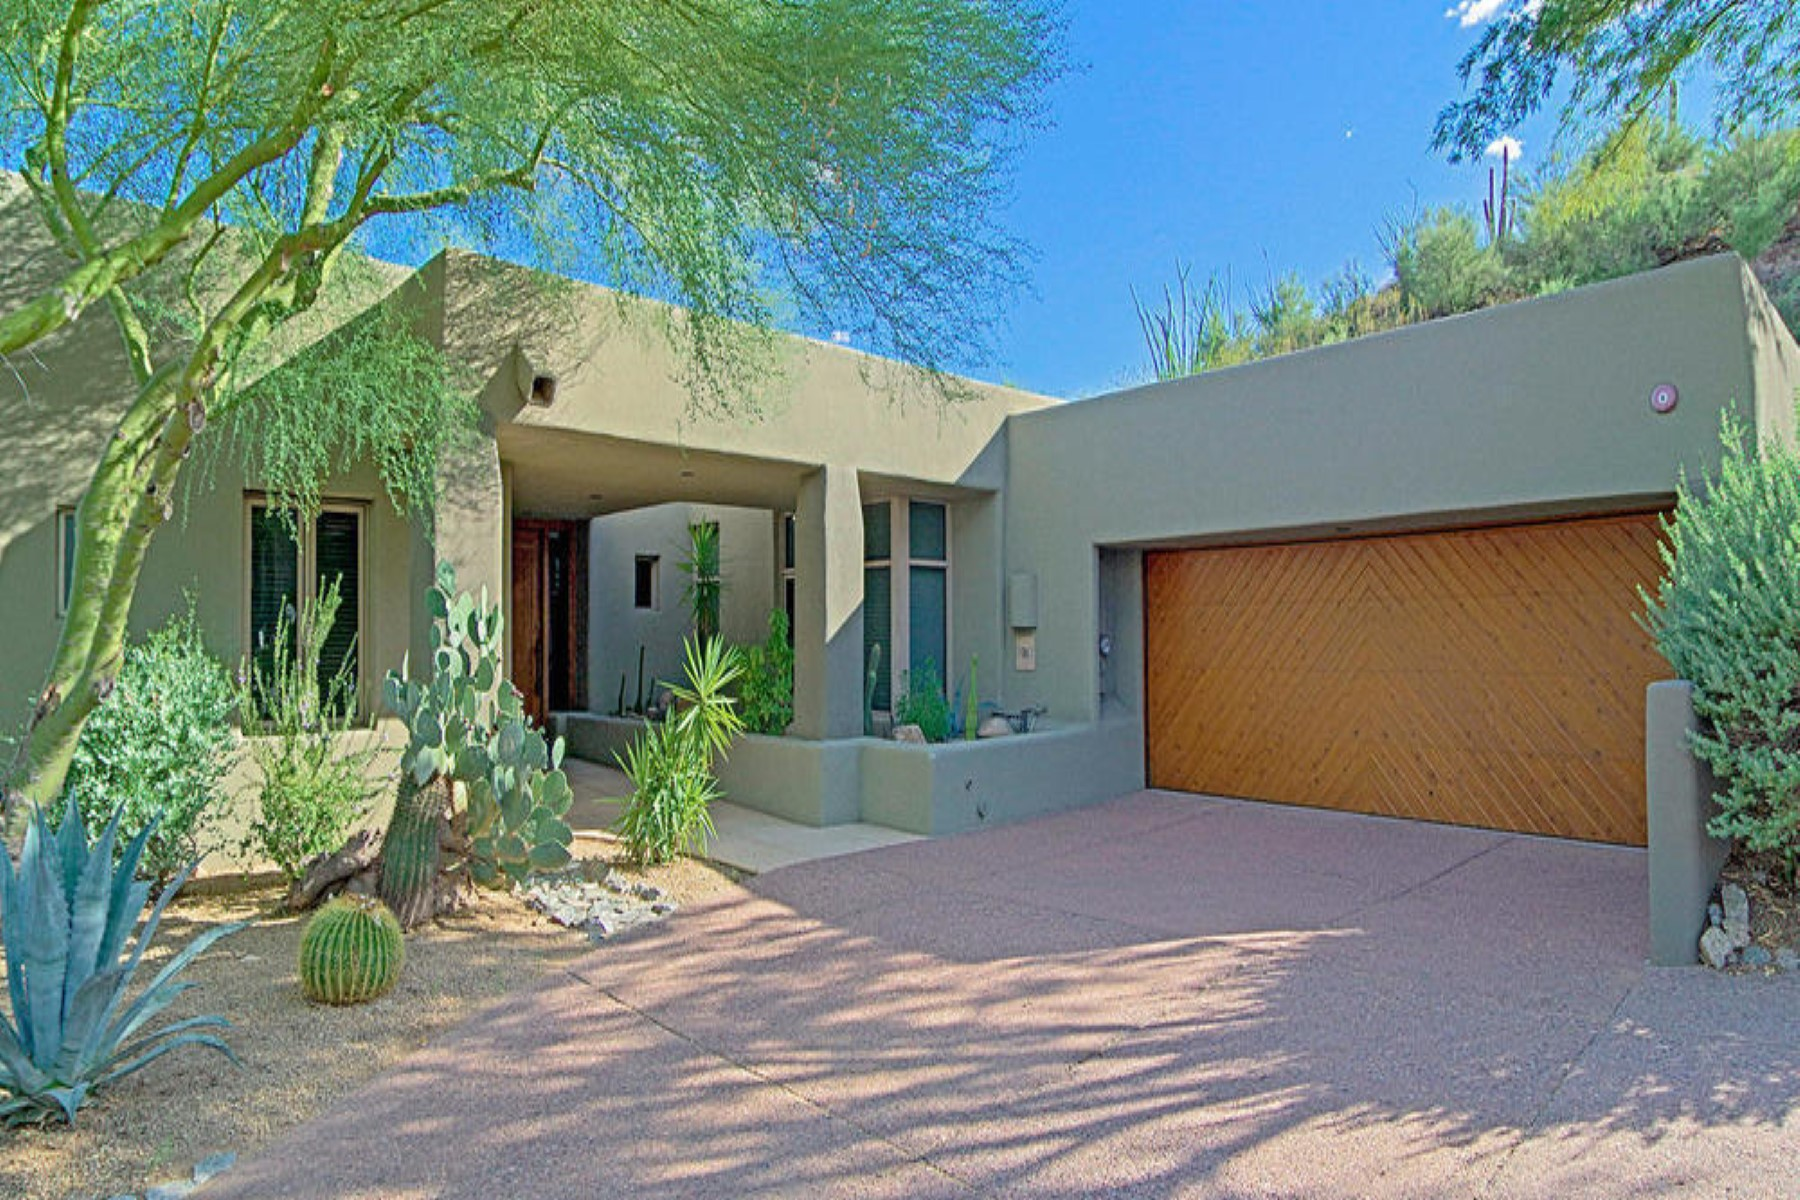 Single Family Home for Rent at Fabulous Turnkey Dual Master Secluded Cottage 9963 E Graythorn Drive Scottsdale, Arizona 85262 United States